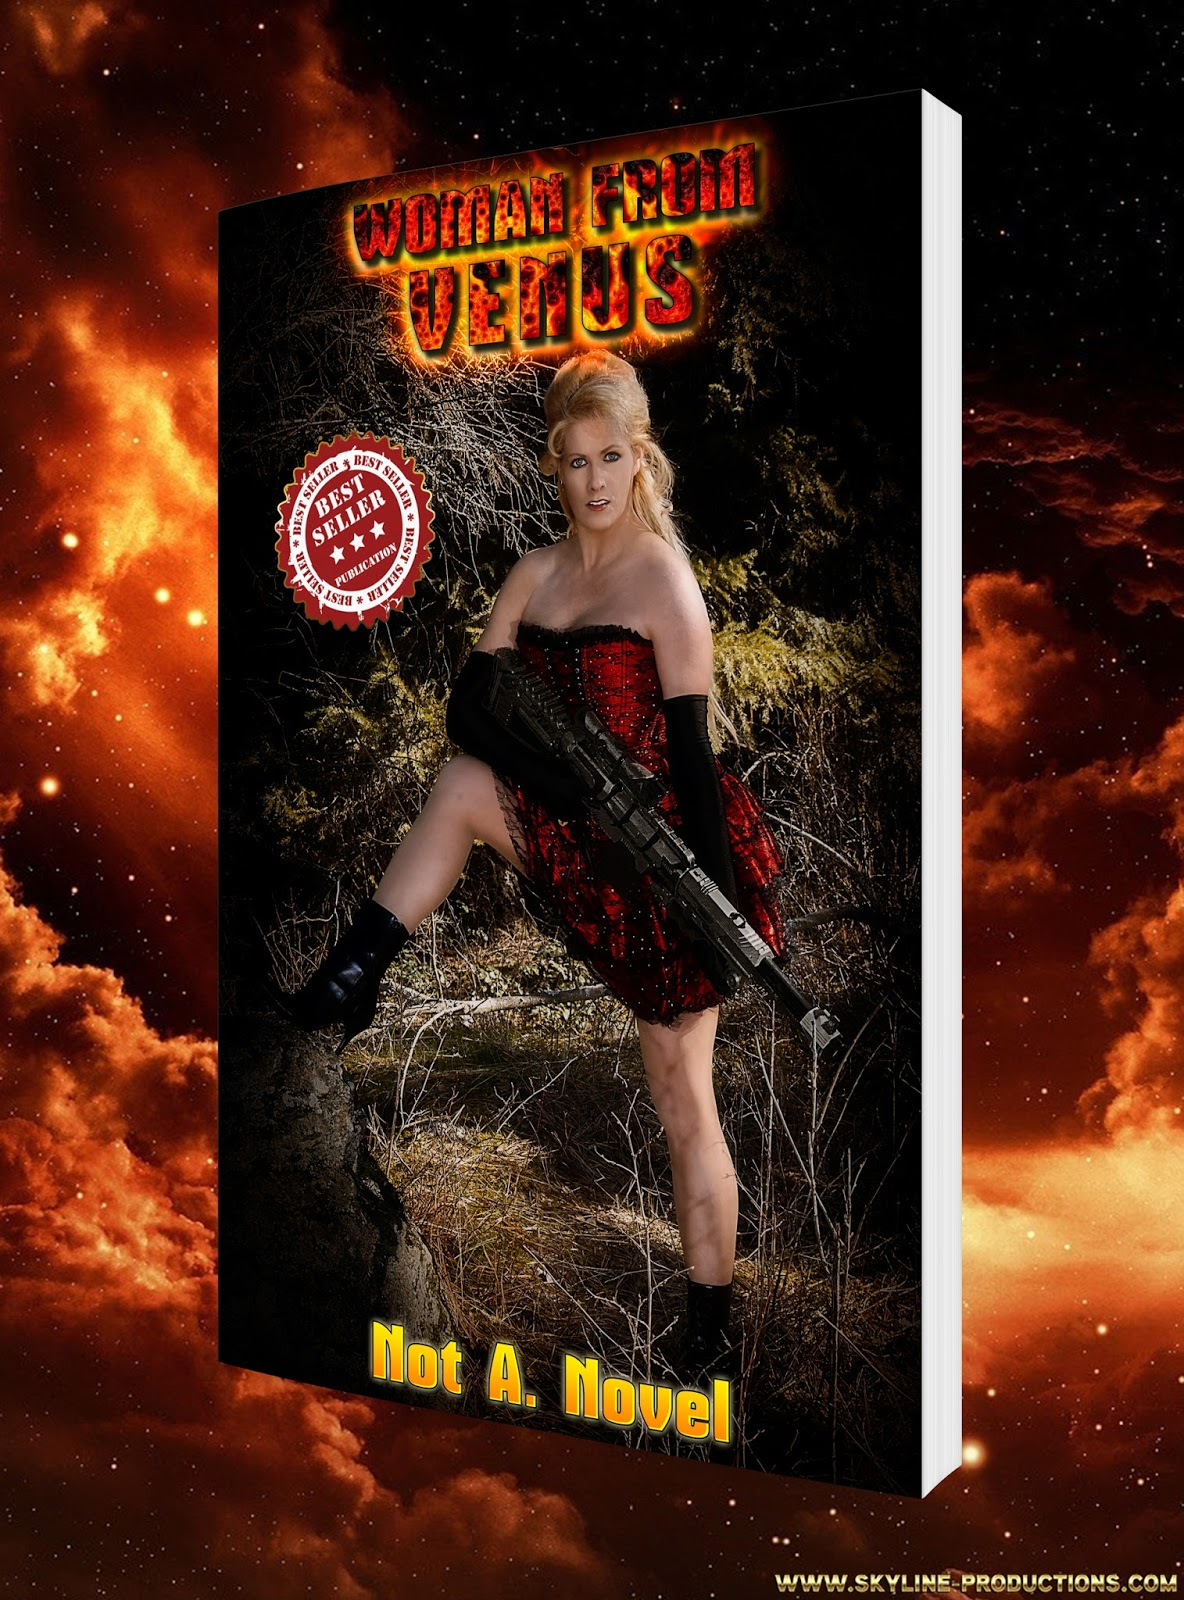 Book Cover Photography Locations : Skyline productions woman from venus book cover mock up